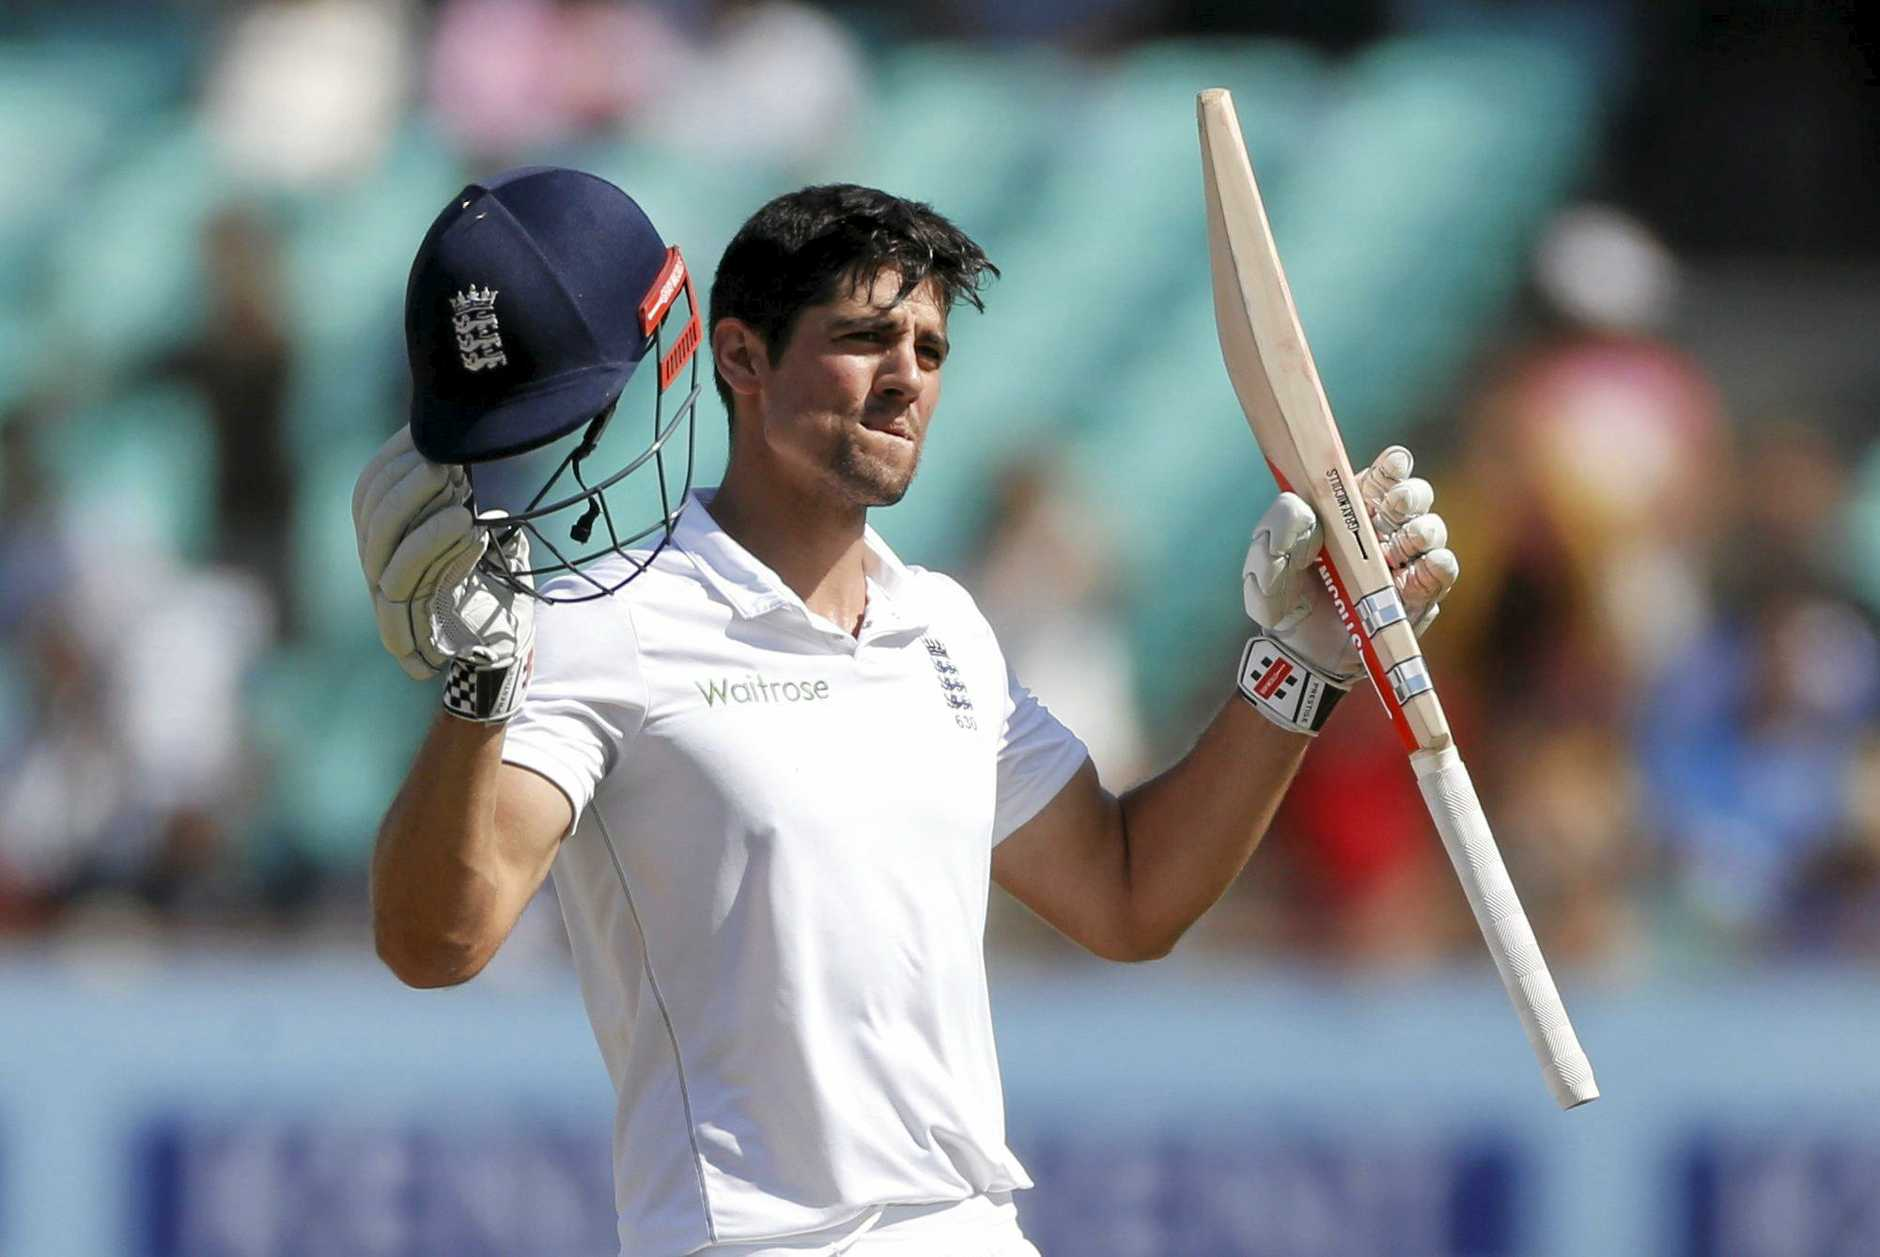 England cricket captain Alastair Cook gestures after scoring century in India in November.